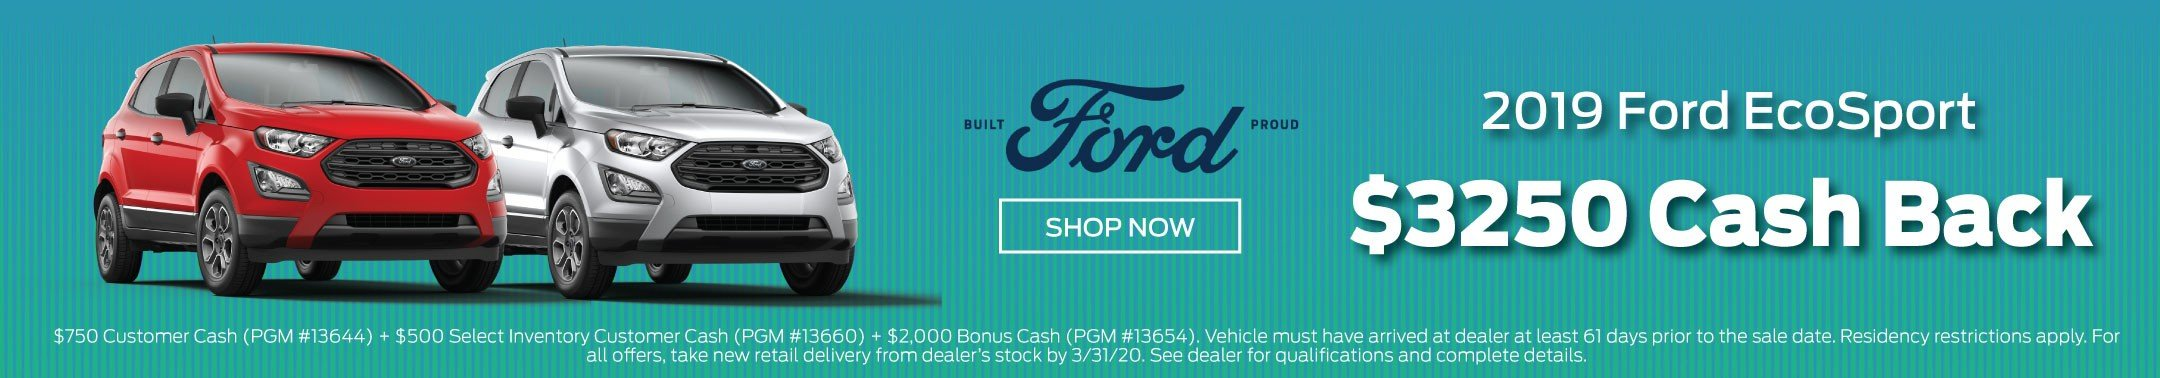 2019 Ford EcoSport Offer 3-2020